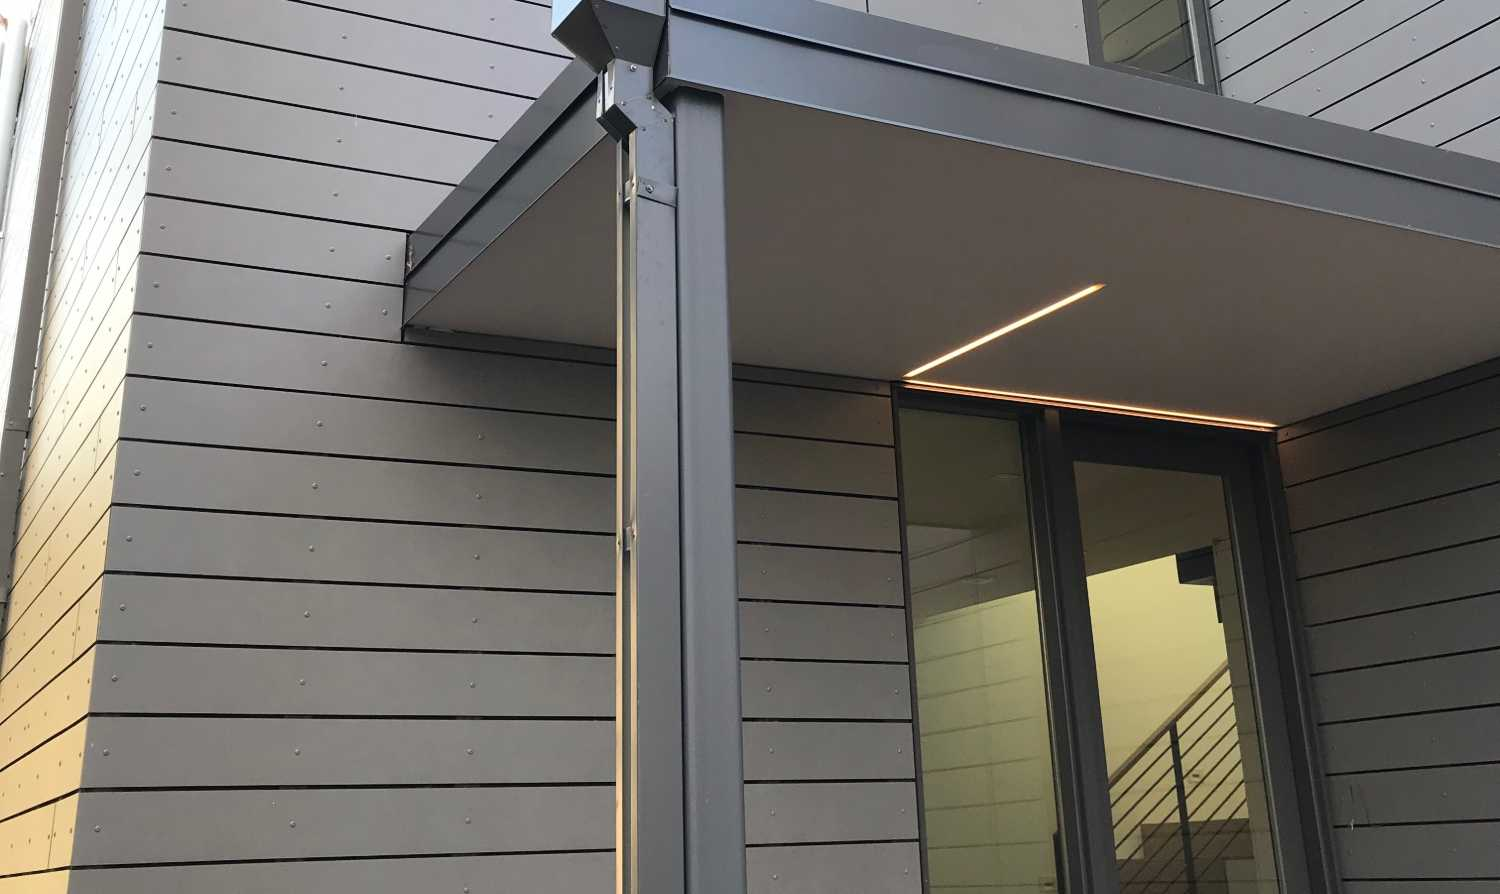 Boulder New Construction Features Lutron Lighting Control + Motorized Shade